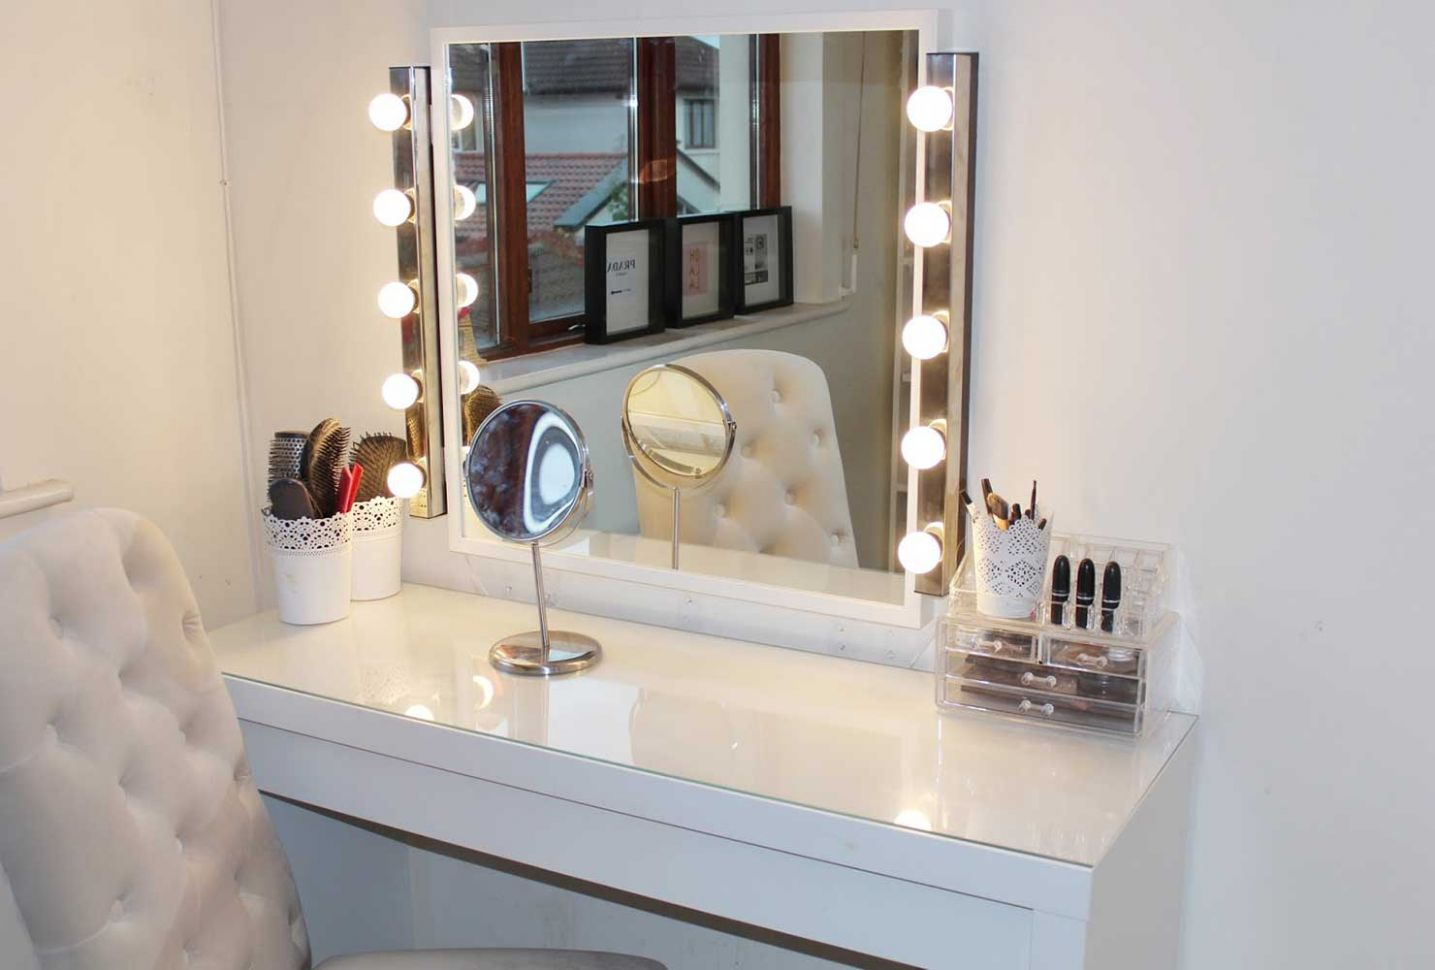 11 Makeup Room Ideas To Brighten Your Morning Routine | Shutterfly - makeup room accessories